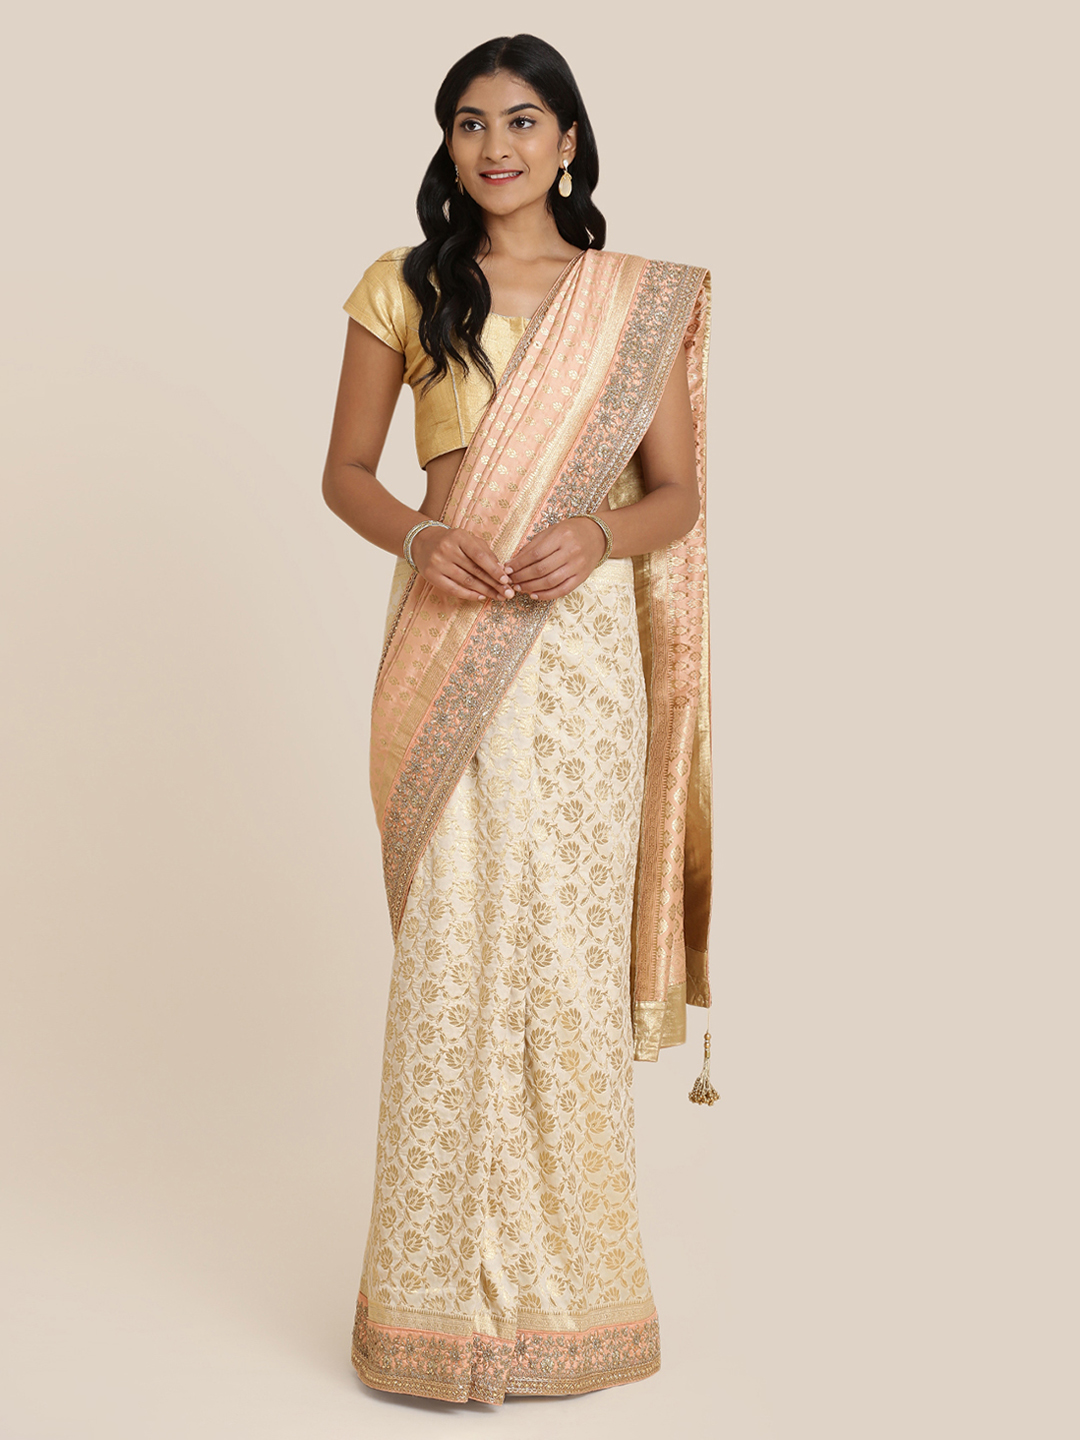 Koskii Peach-Coloured & Gold-Coloured Brocade Woven Design Saree Price in India